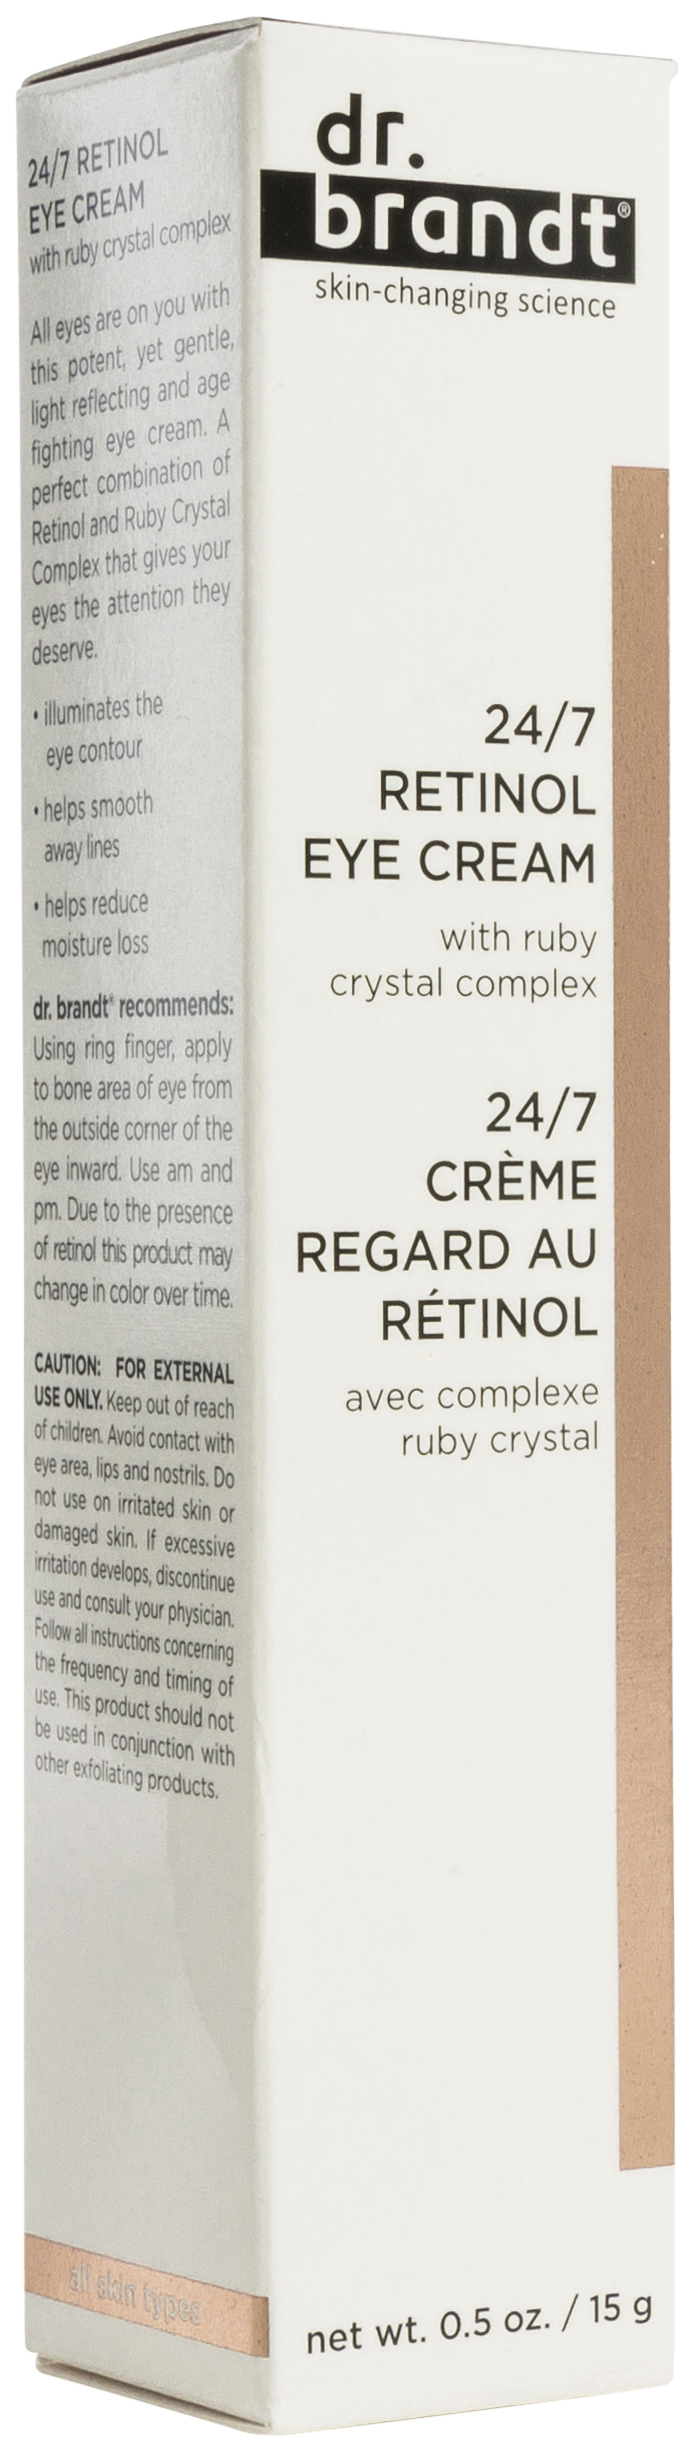 Dr. Brandt - 24/7 Retinol Eye Cream